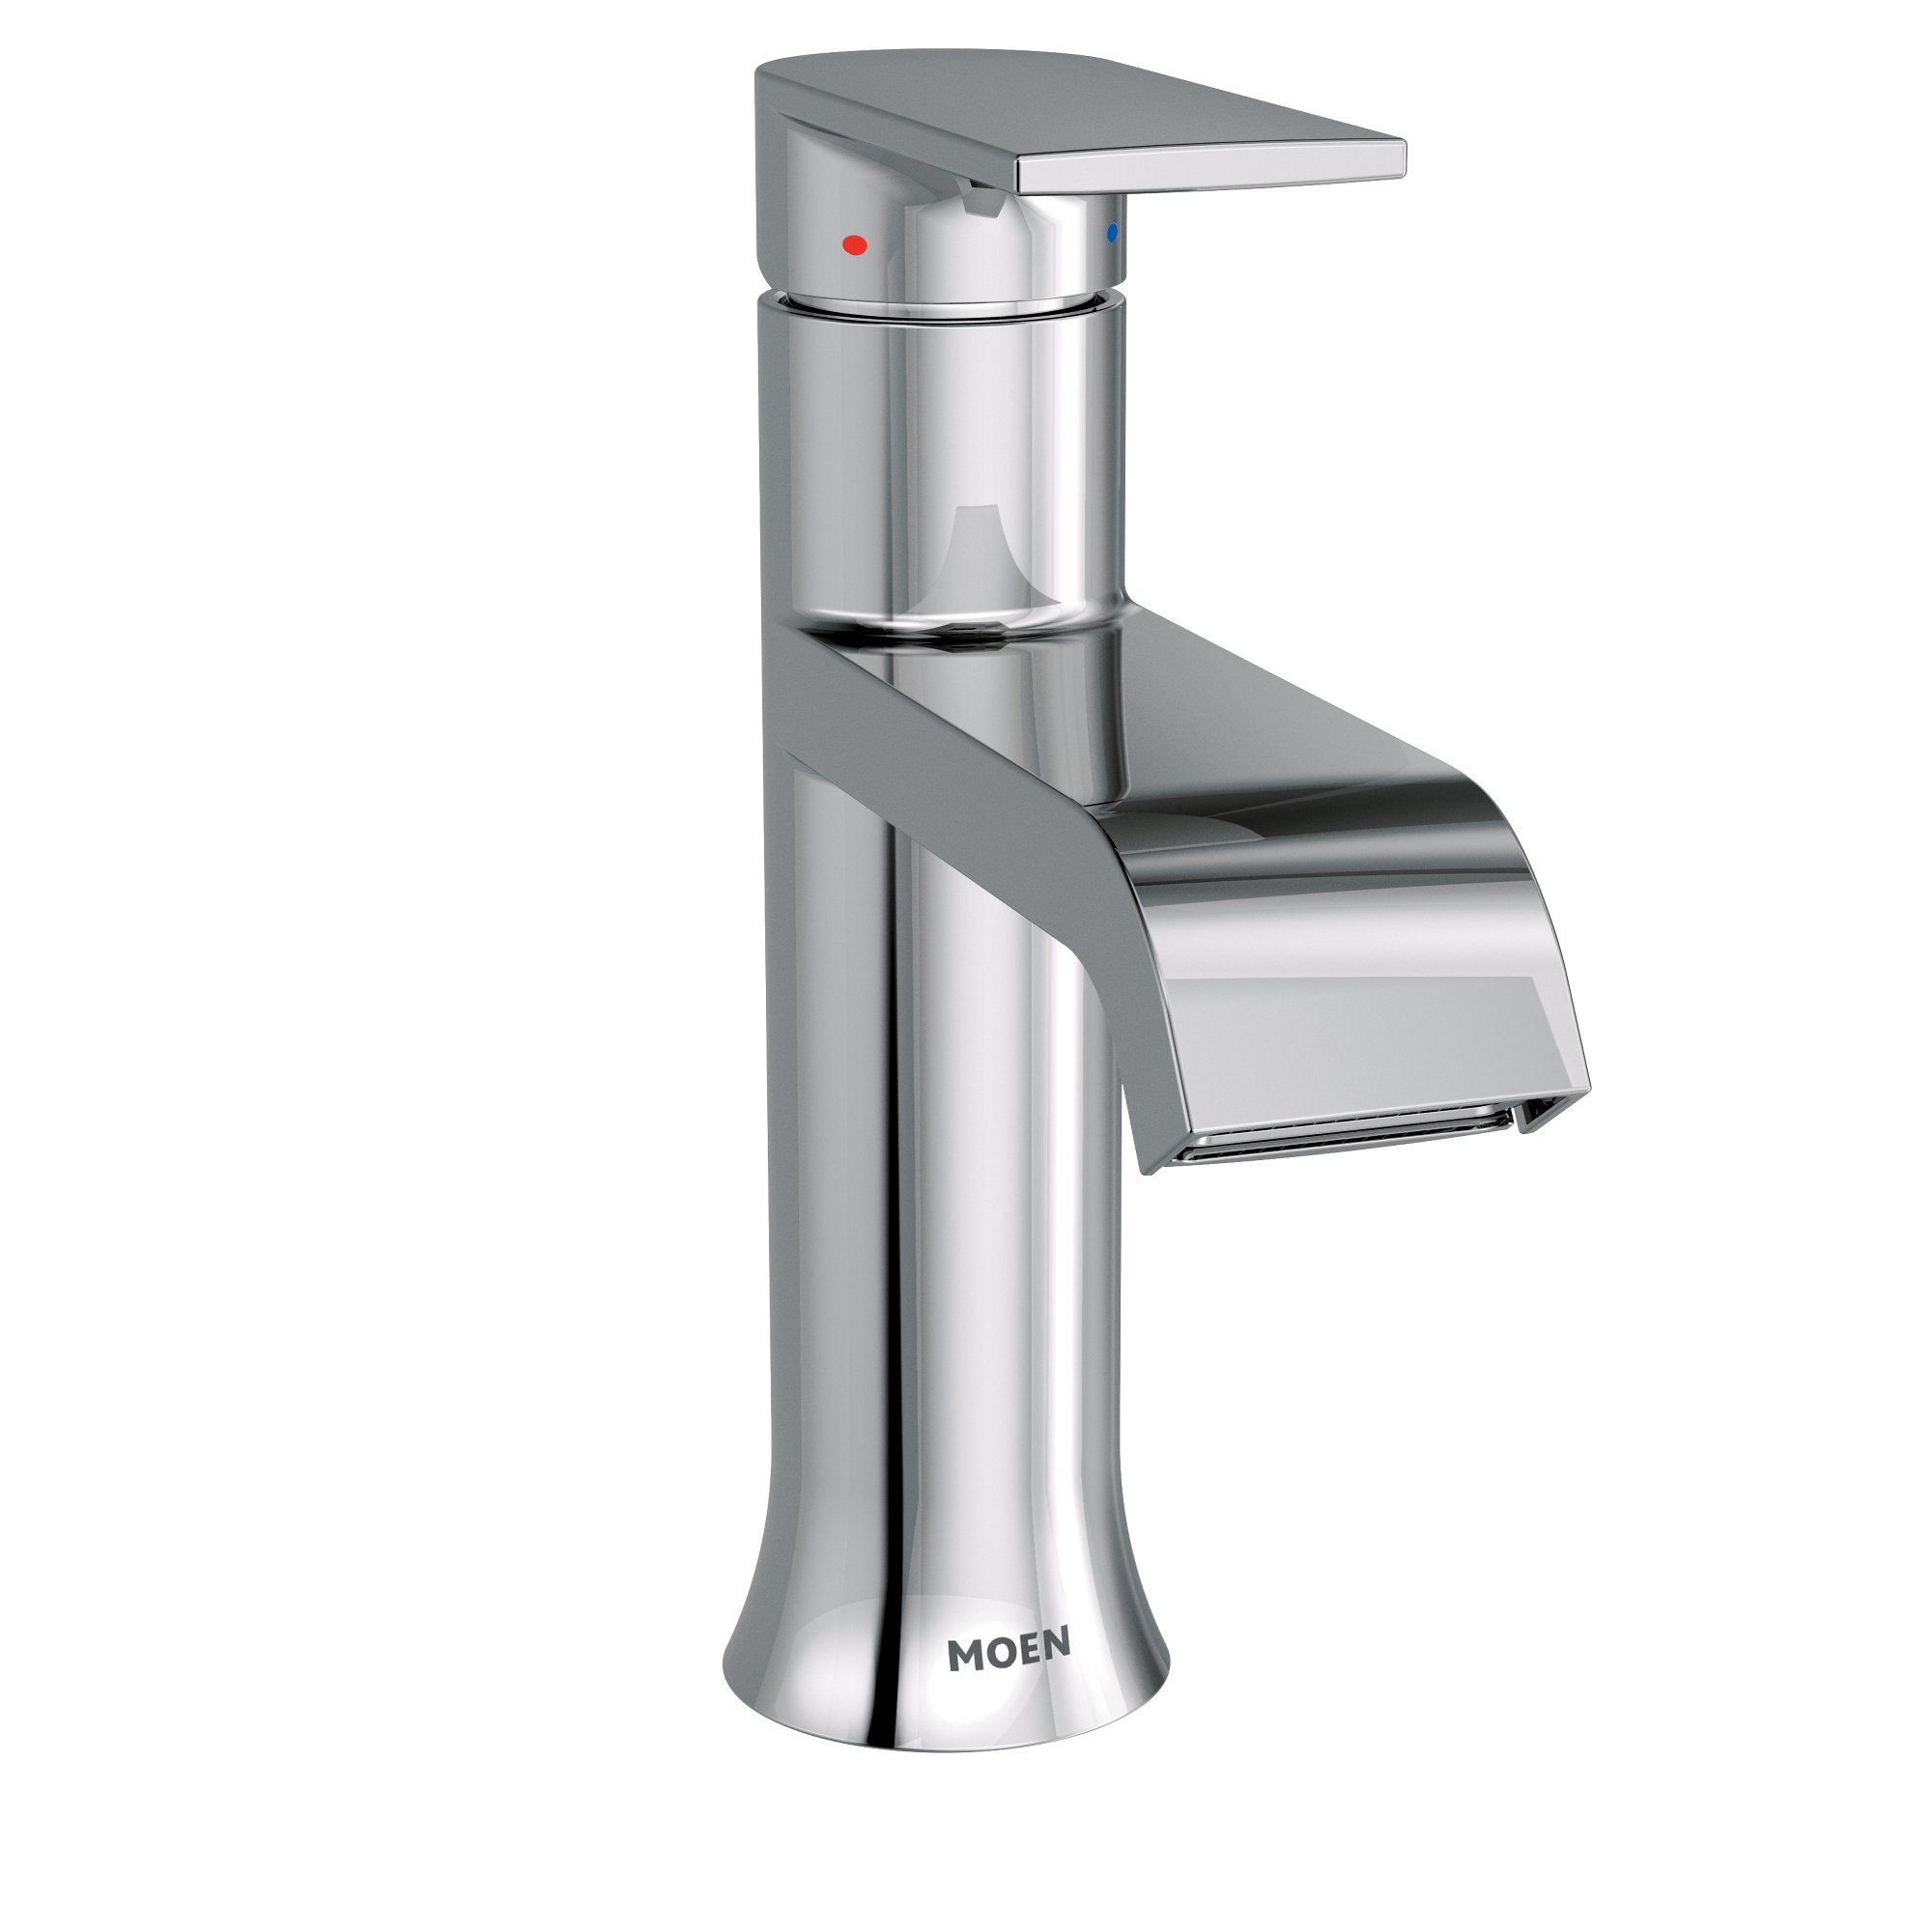 Moen 6702 Genta One-Handle High-Arc Bathroom Faucet with Drain Assembly, Chrome by Moen